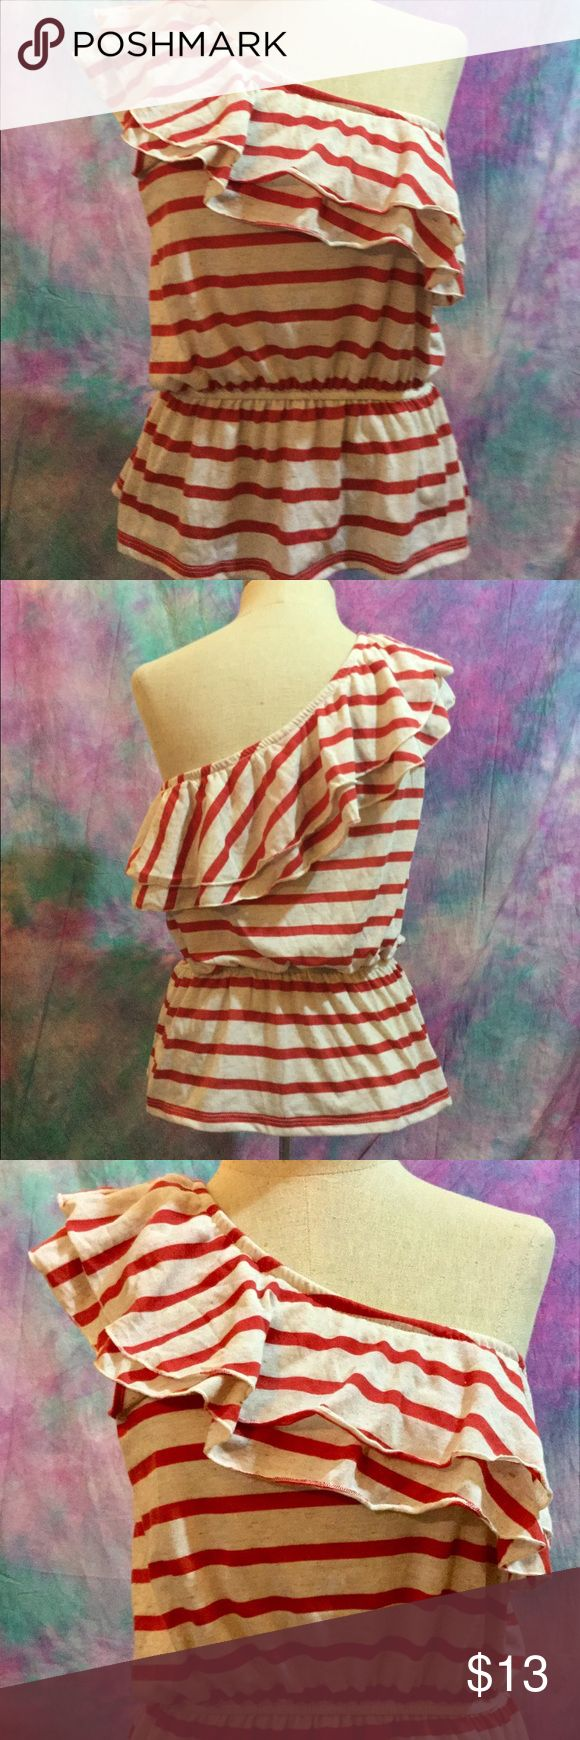 Red cream beige striped ruffle peplum one arm  top This one of a kind top features a ruffled one sleeve, elasticized waist, and a figure flattering peplum design. Never worn. Tops